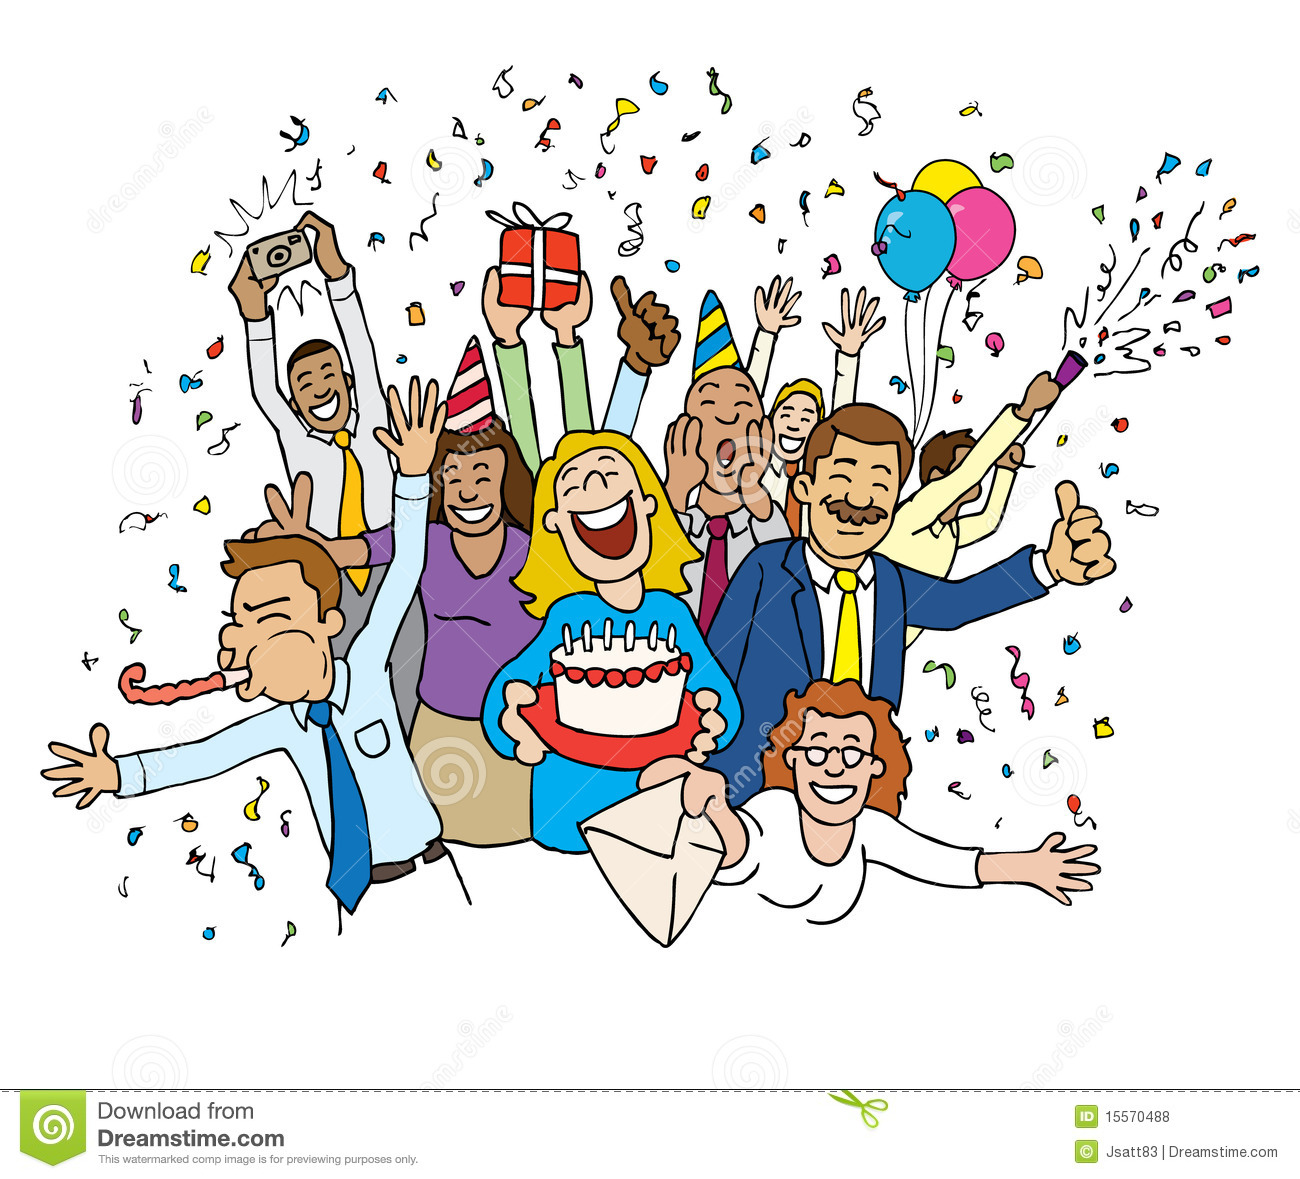 Cartoon Office Celebration Royalty Free Stock Photos   Image  15570488